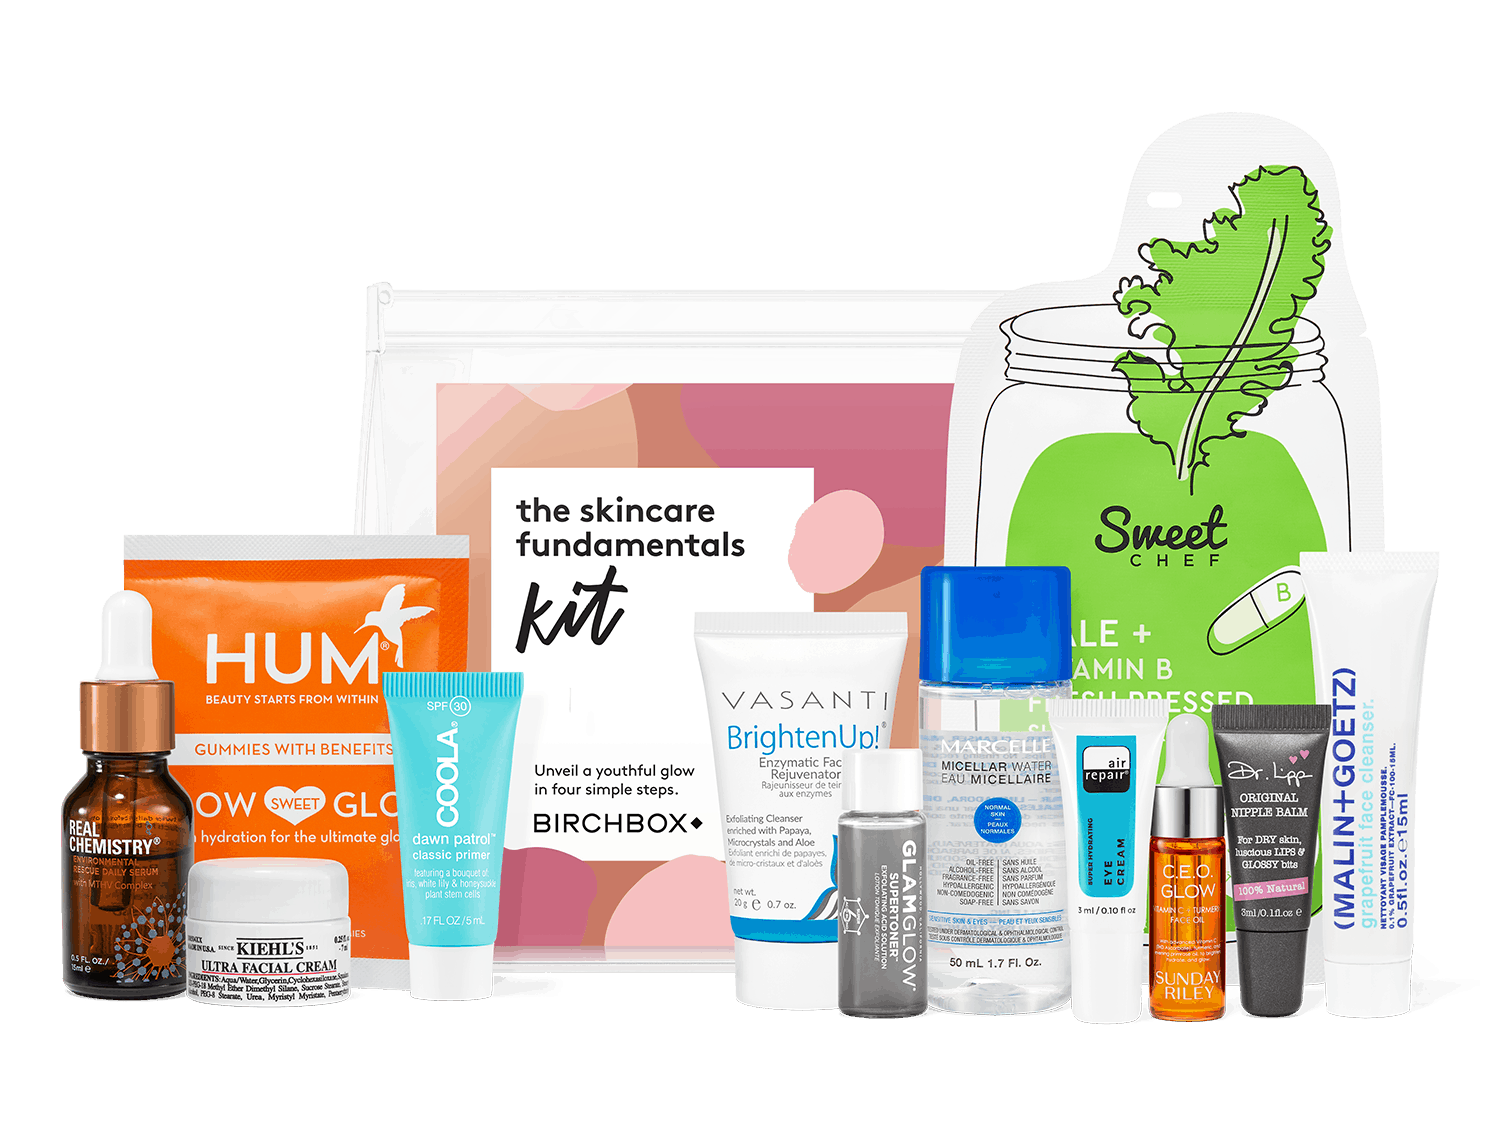 The Skincare Fundamentals Kit – New Birchbox Kit Available Now + Coupons!